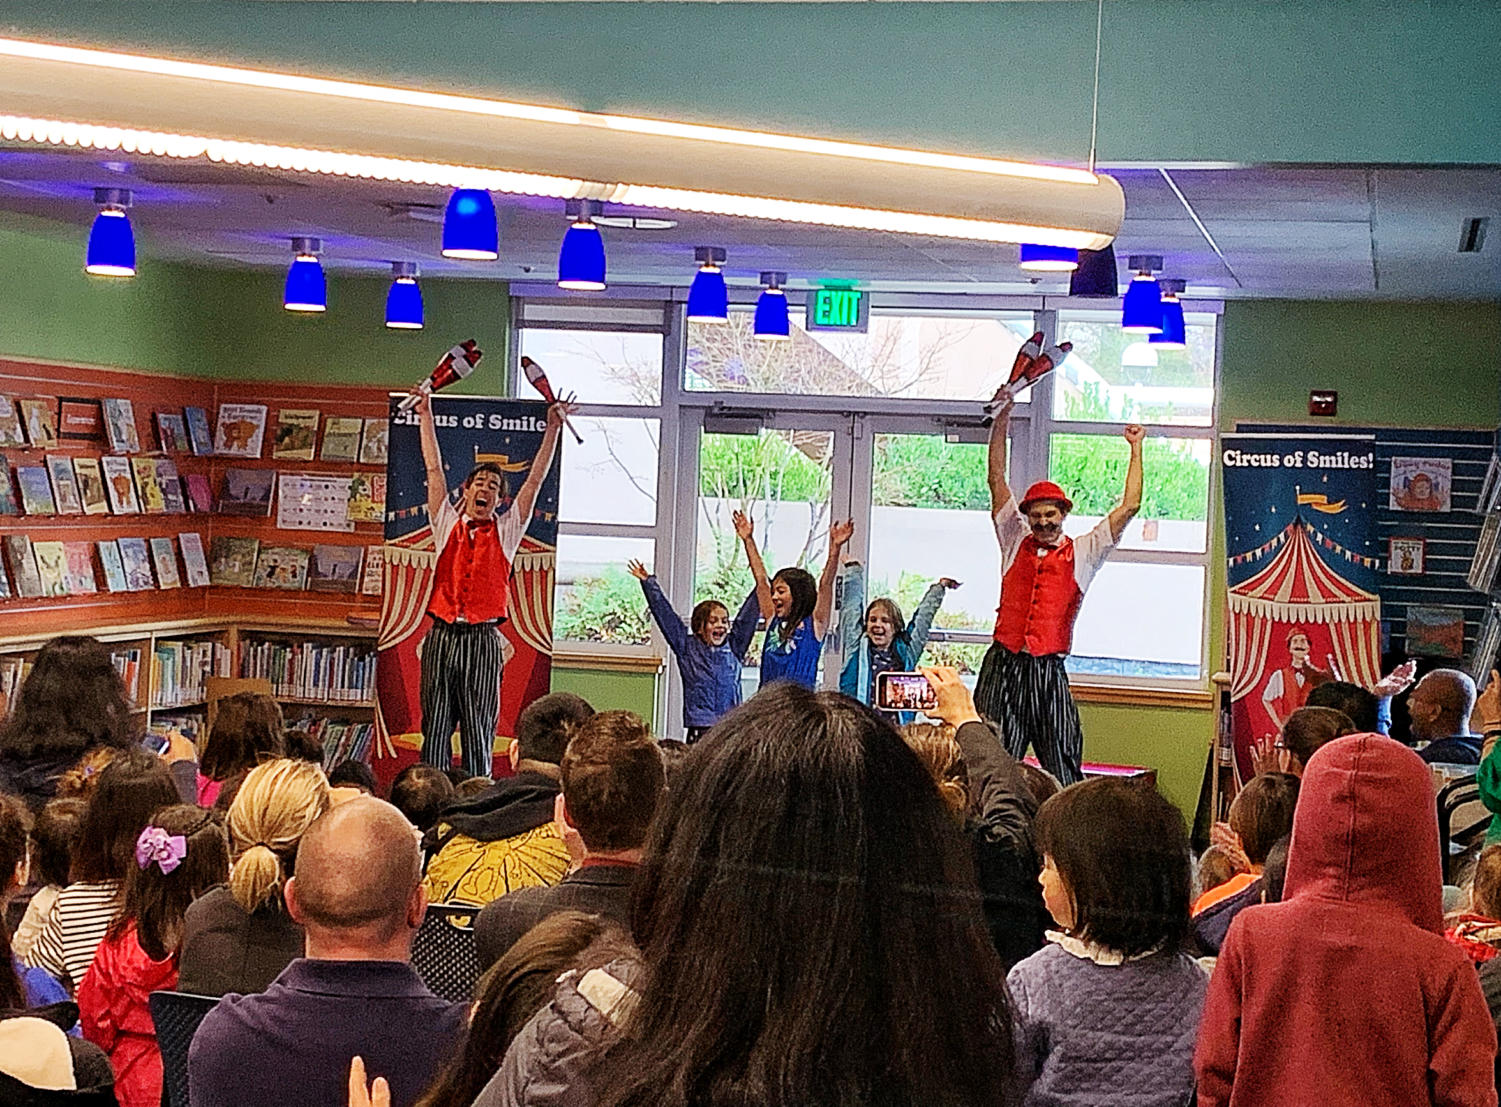 After performing a juggling act with three volunteers, Mr. Quick and Mr. Mustache bow to the audience. The sound of laughter fills the otherwise quiet San Carlos Library on the rainy day of Jan. 20.